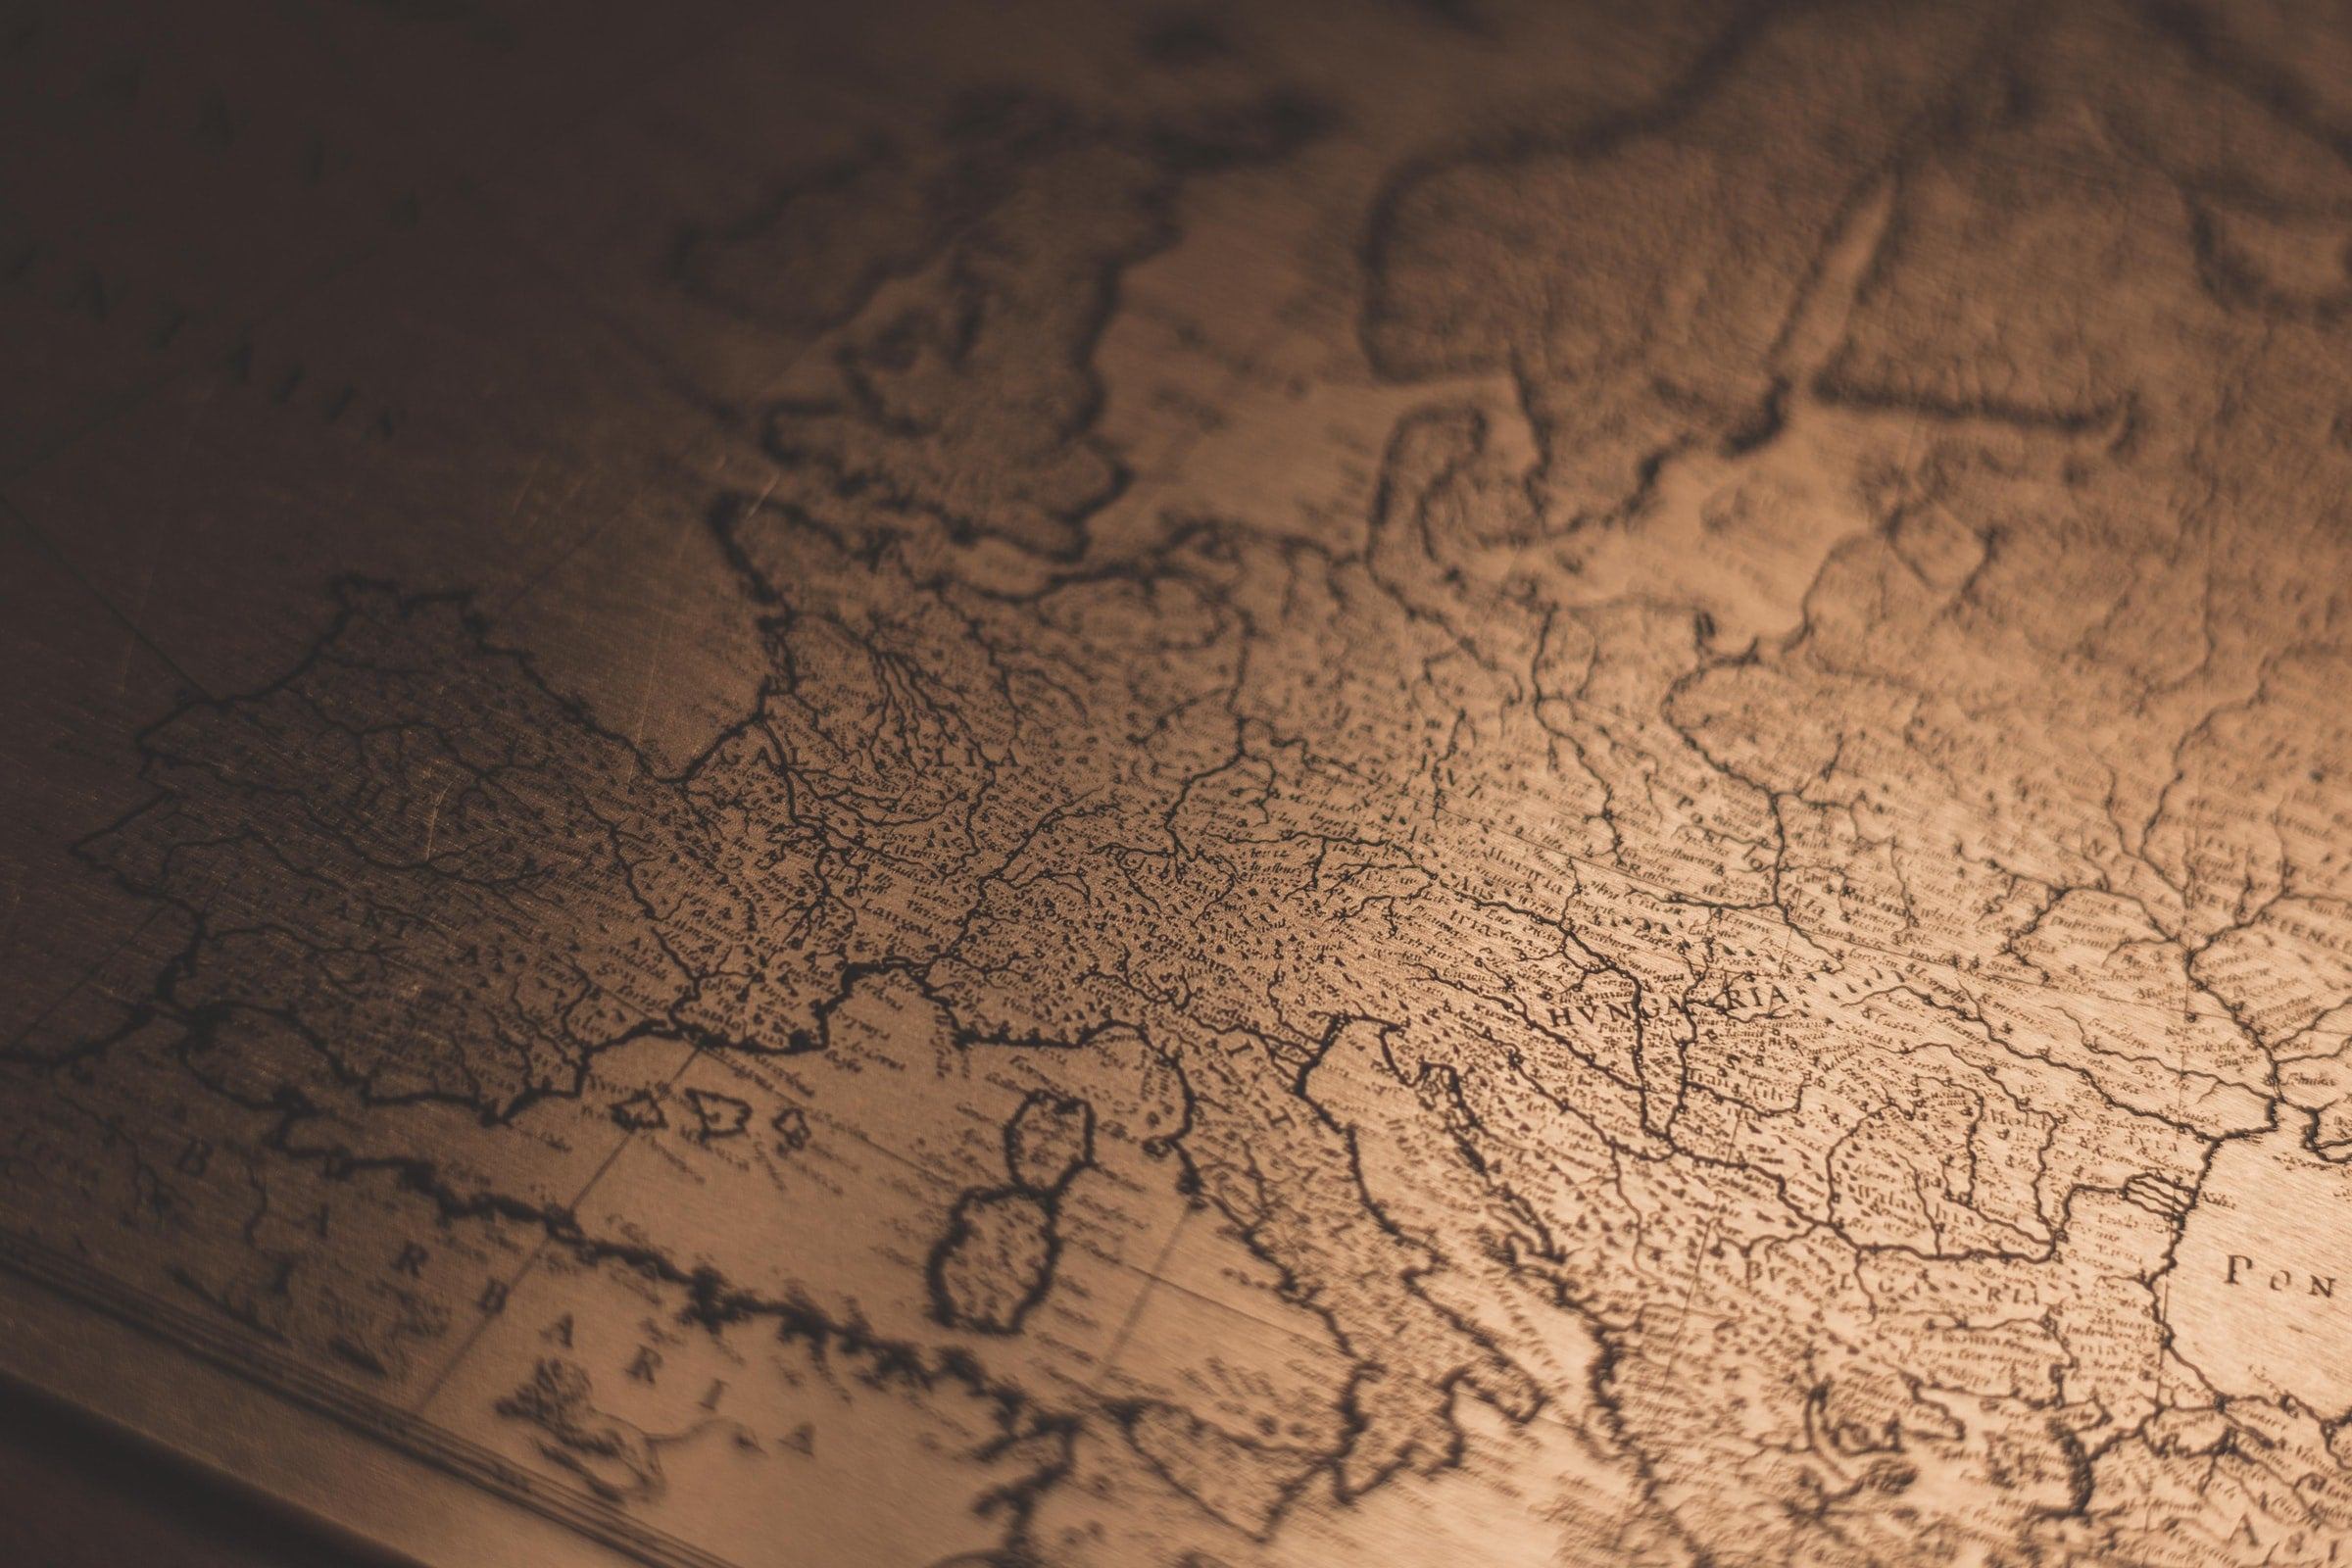 A picture of a map of Europe